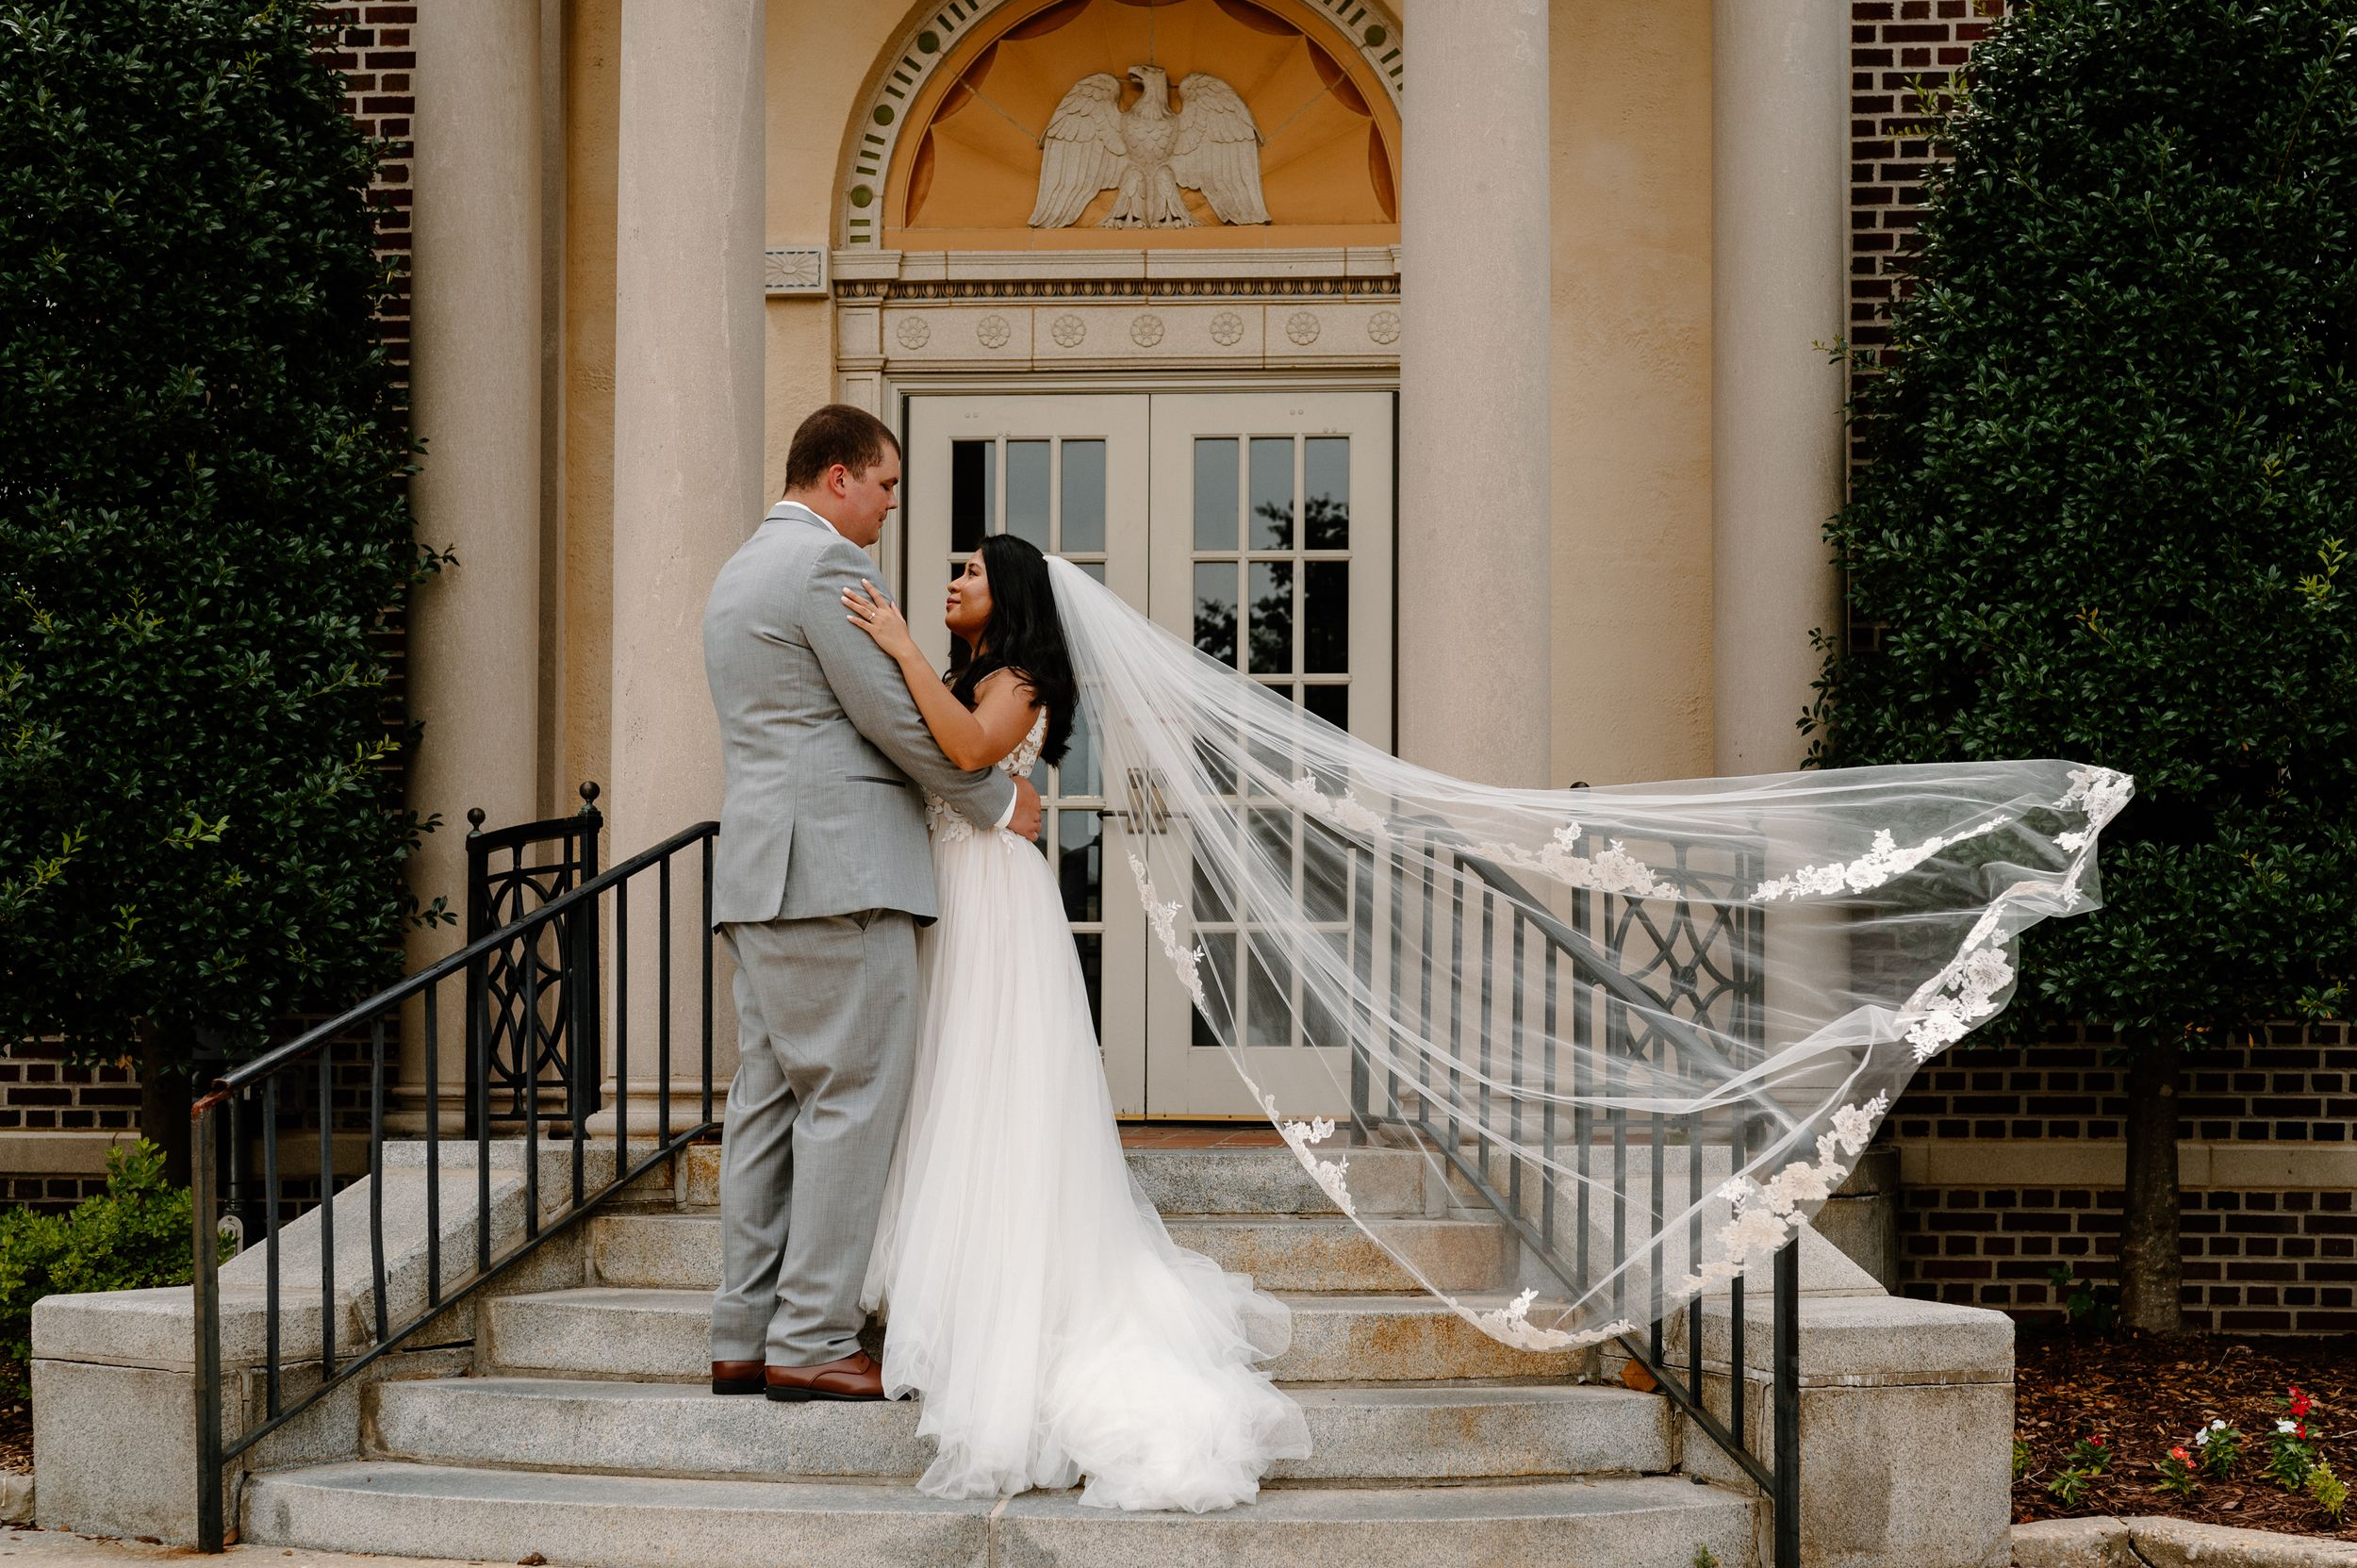 Georgetown, DE - Sussex County Courthouse weddings and elopements can be beautiful and special